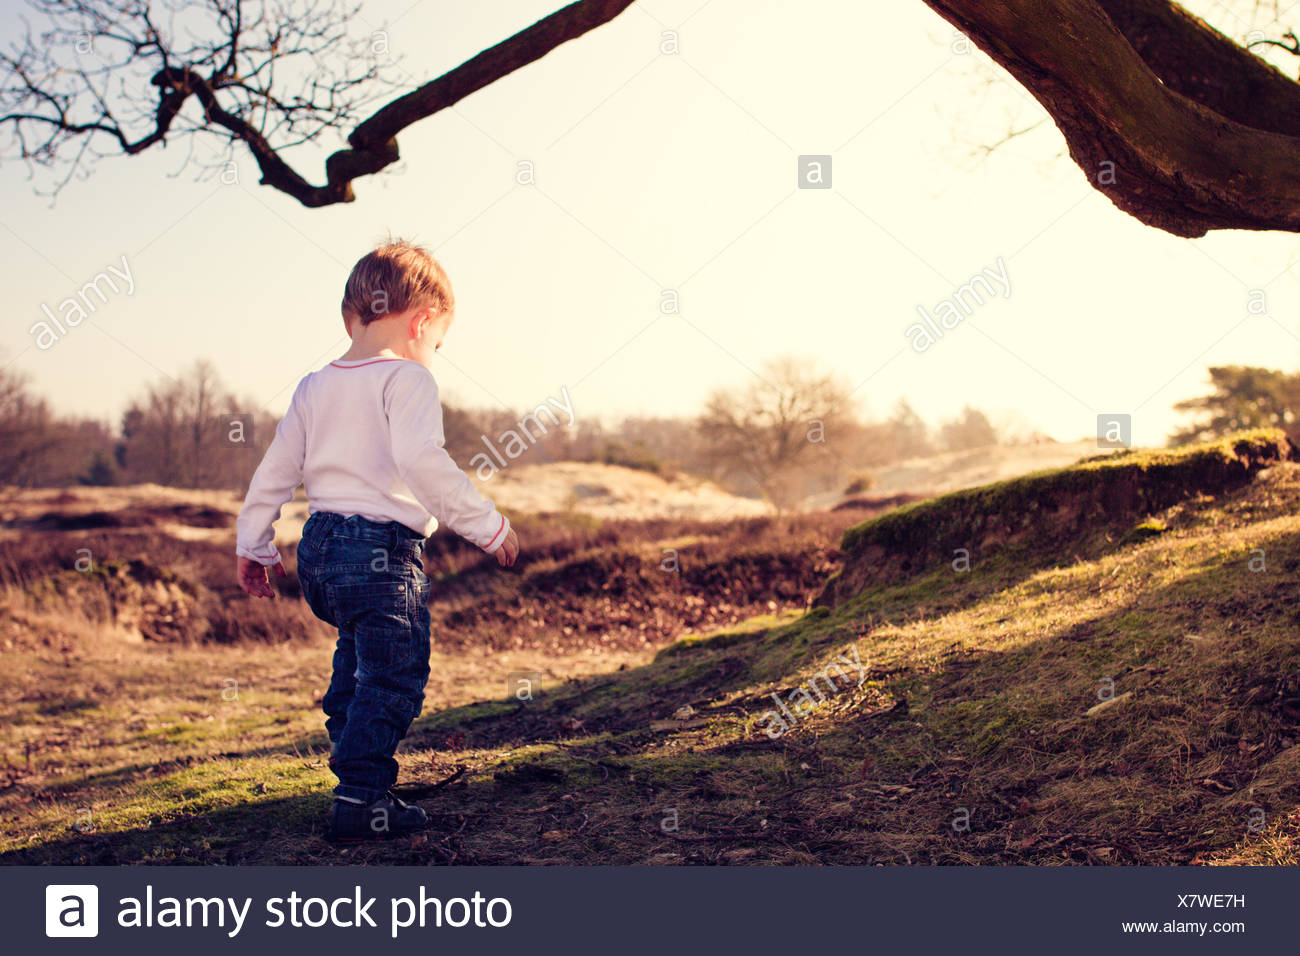 Toddler exploring the countryside - Stock Image